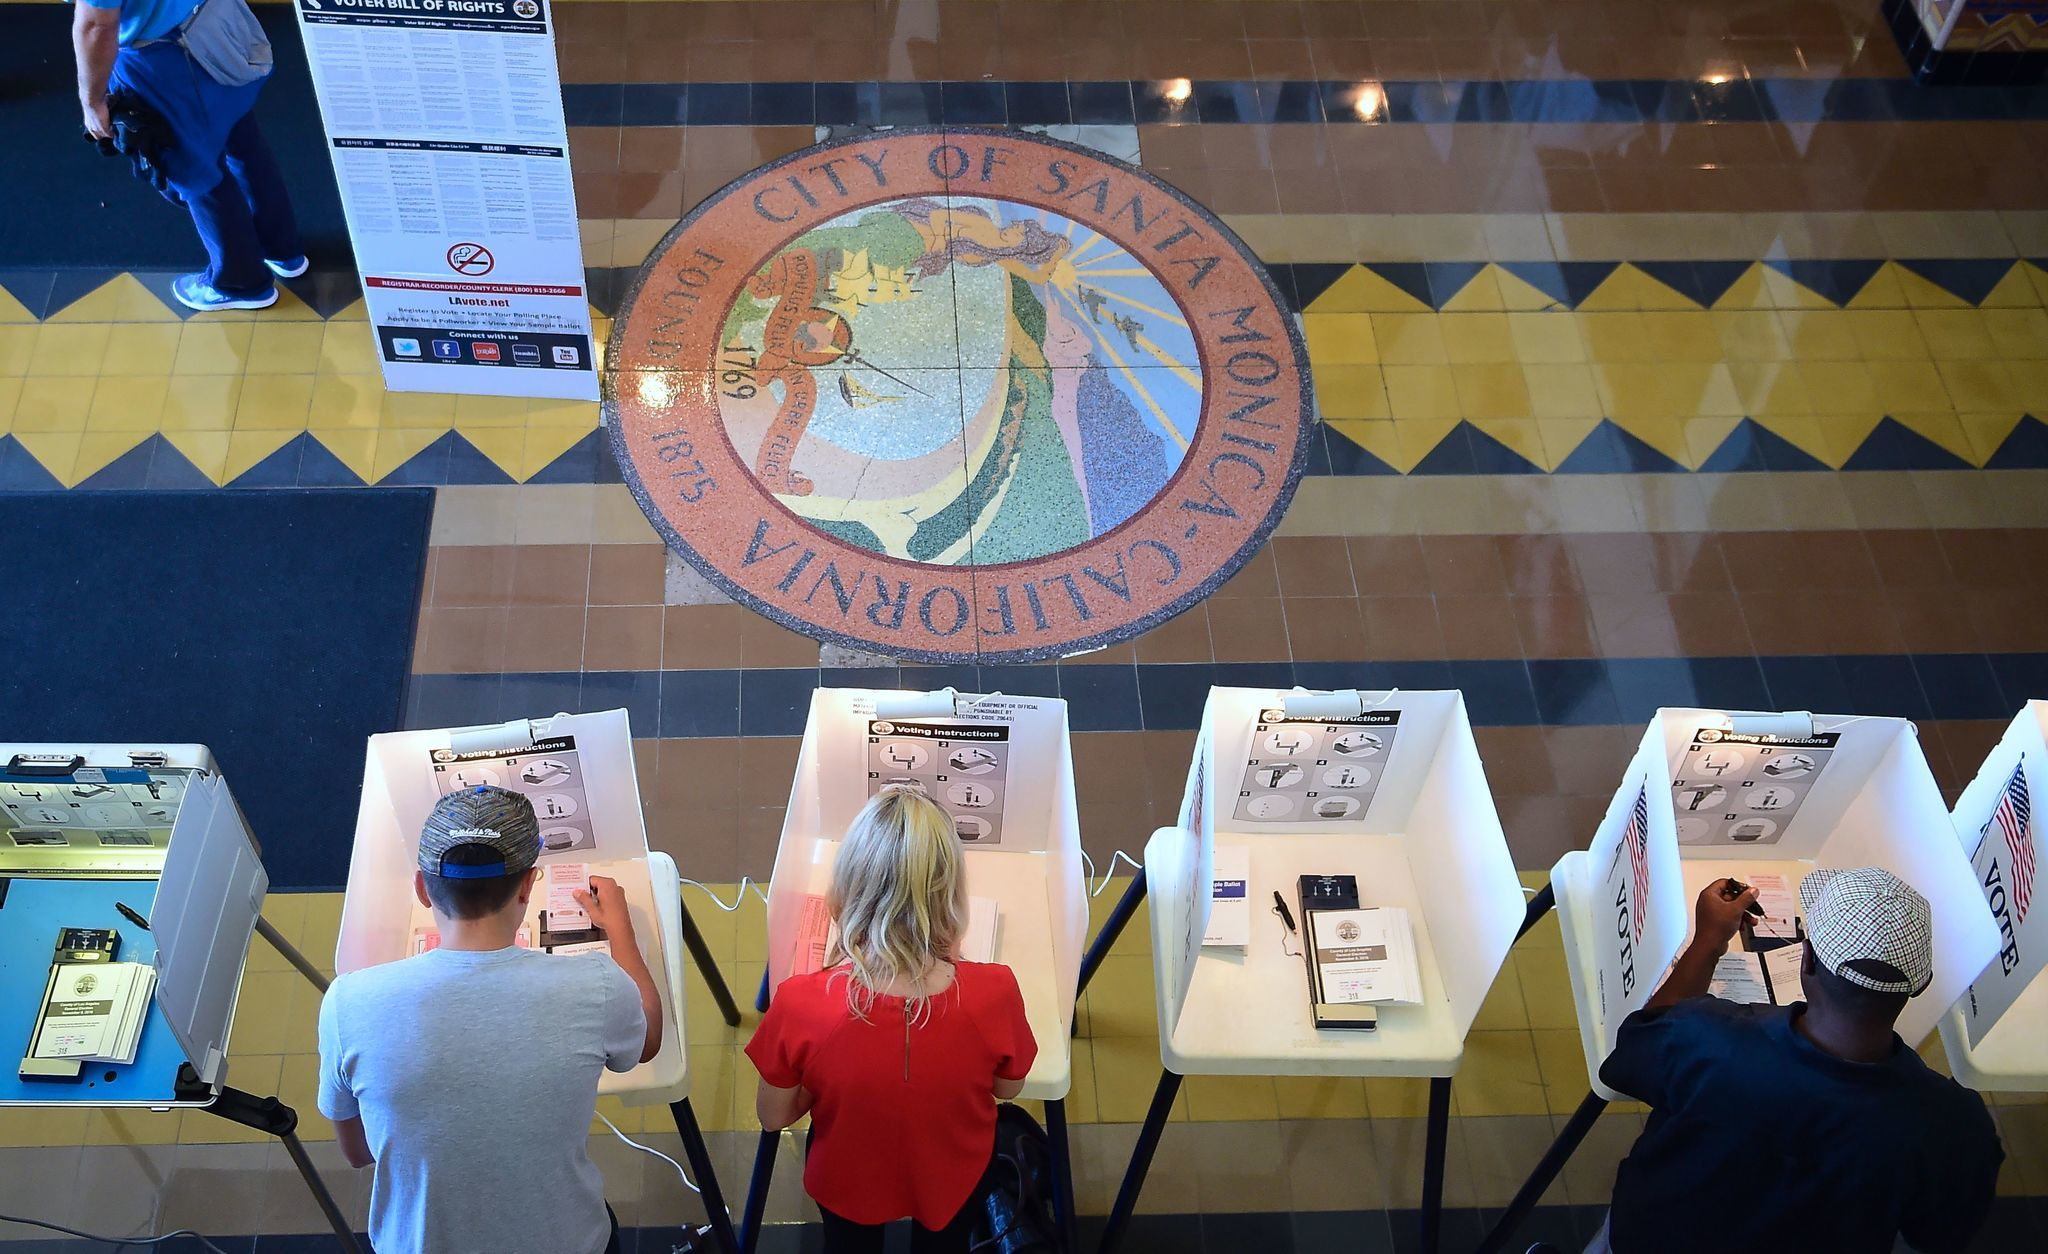 Voters cast their ballots in Santa Monica City Hall in November. (AFP/Getty Images)